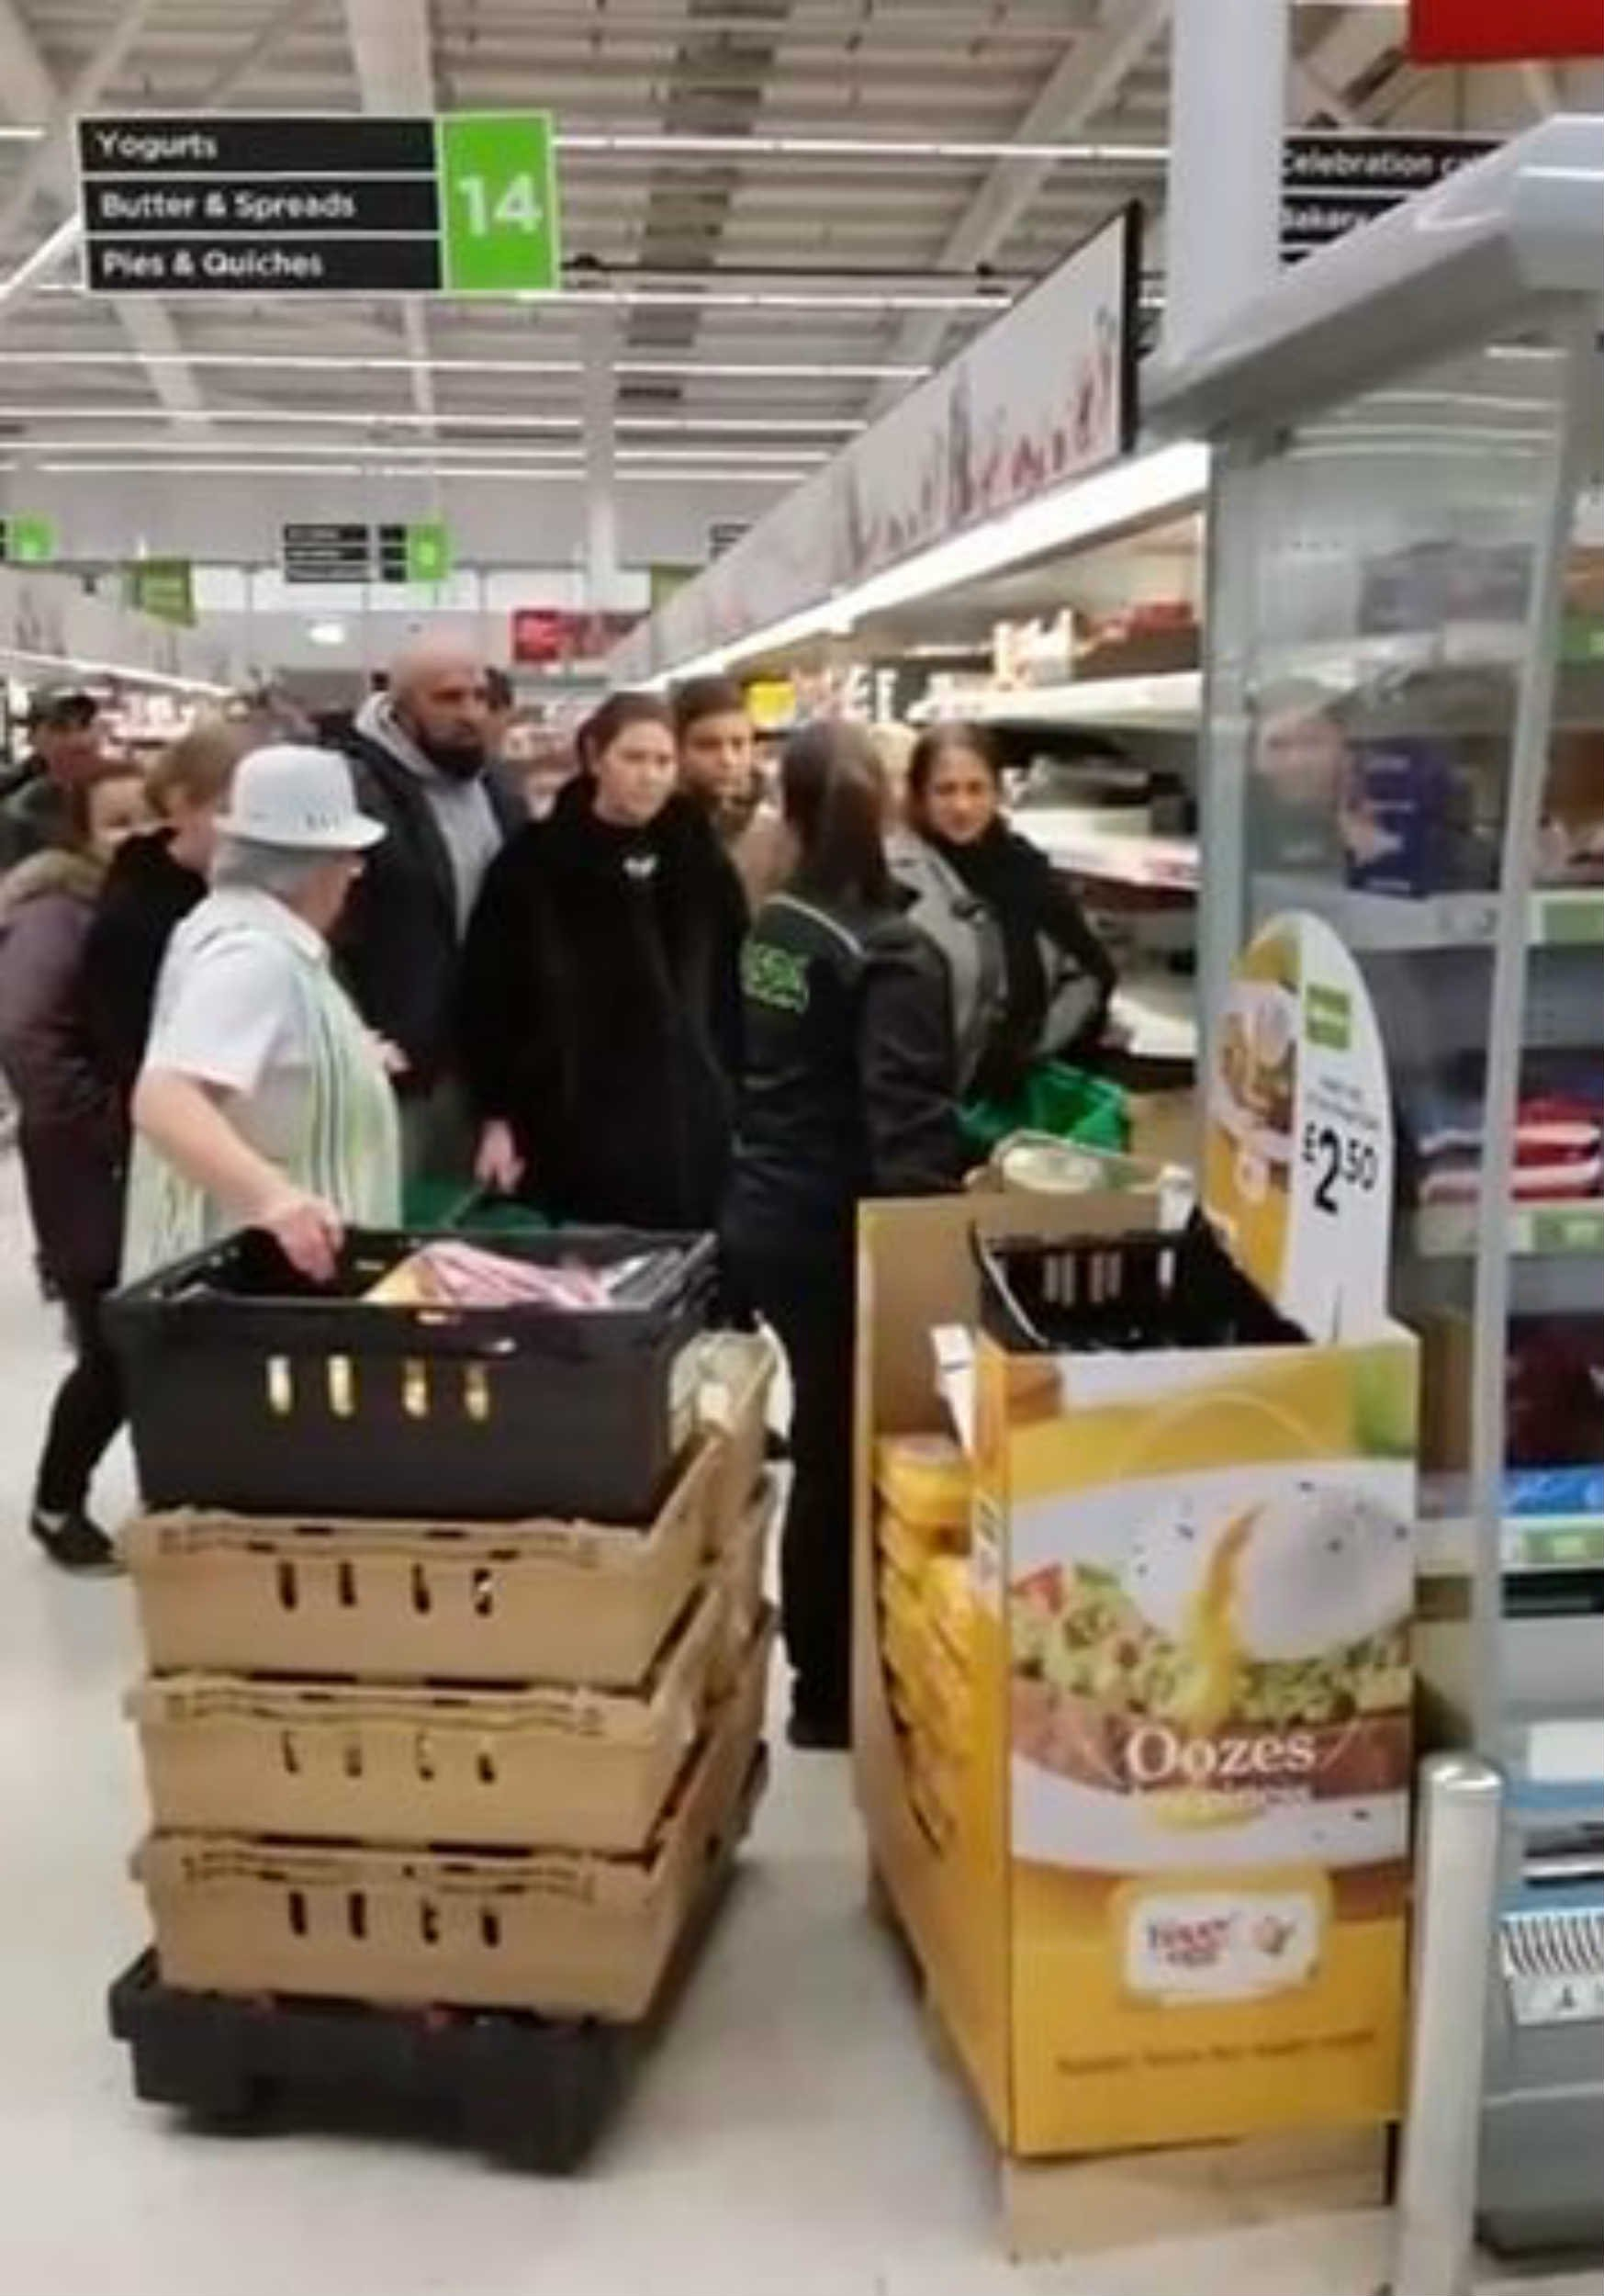 HILARIOUS footage shows manic shoppers battling to get at goods in the reduced aisle after it is filled up with multiple cretes. The video, which was taken by Marcus Steel, shows Asda shoppers in Toryglen, Glasgow, scrabbling for the items seconds after they are placed on the shelves. The clip, which was uploaded last Wednesday, has been viewed more than a million times with Facebook users loving the shoppers enthusiasm for a bargain. Asda workers are initially seen filling up the shelves with eight crates of reduced goodies. One of the workers can be seen speaking to people, who are swarmed around her, possibly asking them for patientice as she fills up the shelves. Once she finishes, the stampede of shoppers can be seen gathering round the shelf, with everyone trying to grab a bargain.